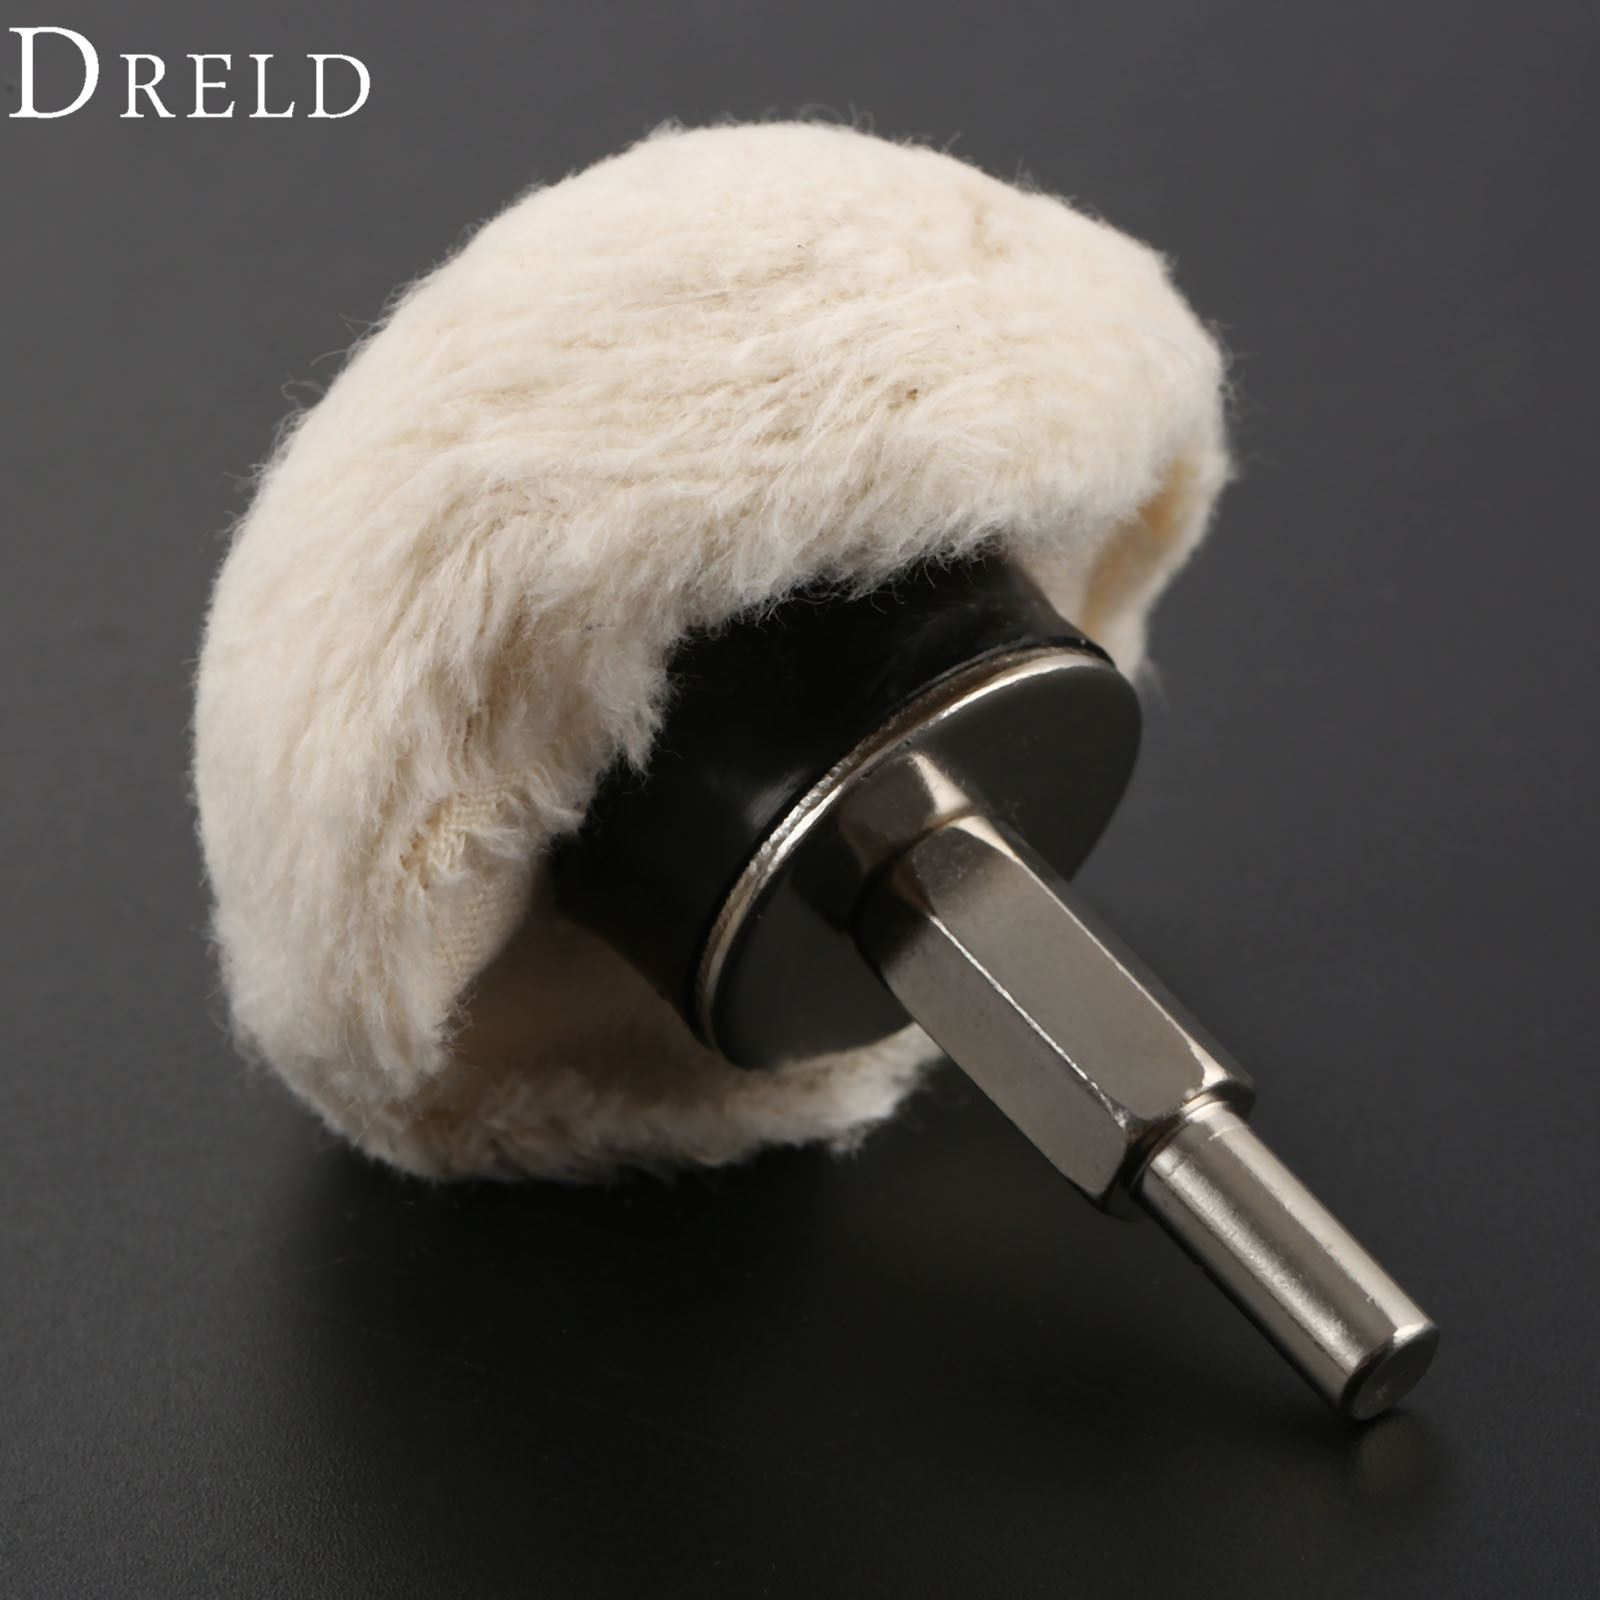 DRELD 1Pc Dremel Accessories 50mm/2 Inch 100% Cotton Dome Polishing Mop Grinding Buffing Wheel Polish Pad For Drill Rotary Tool